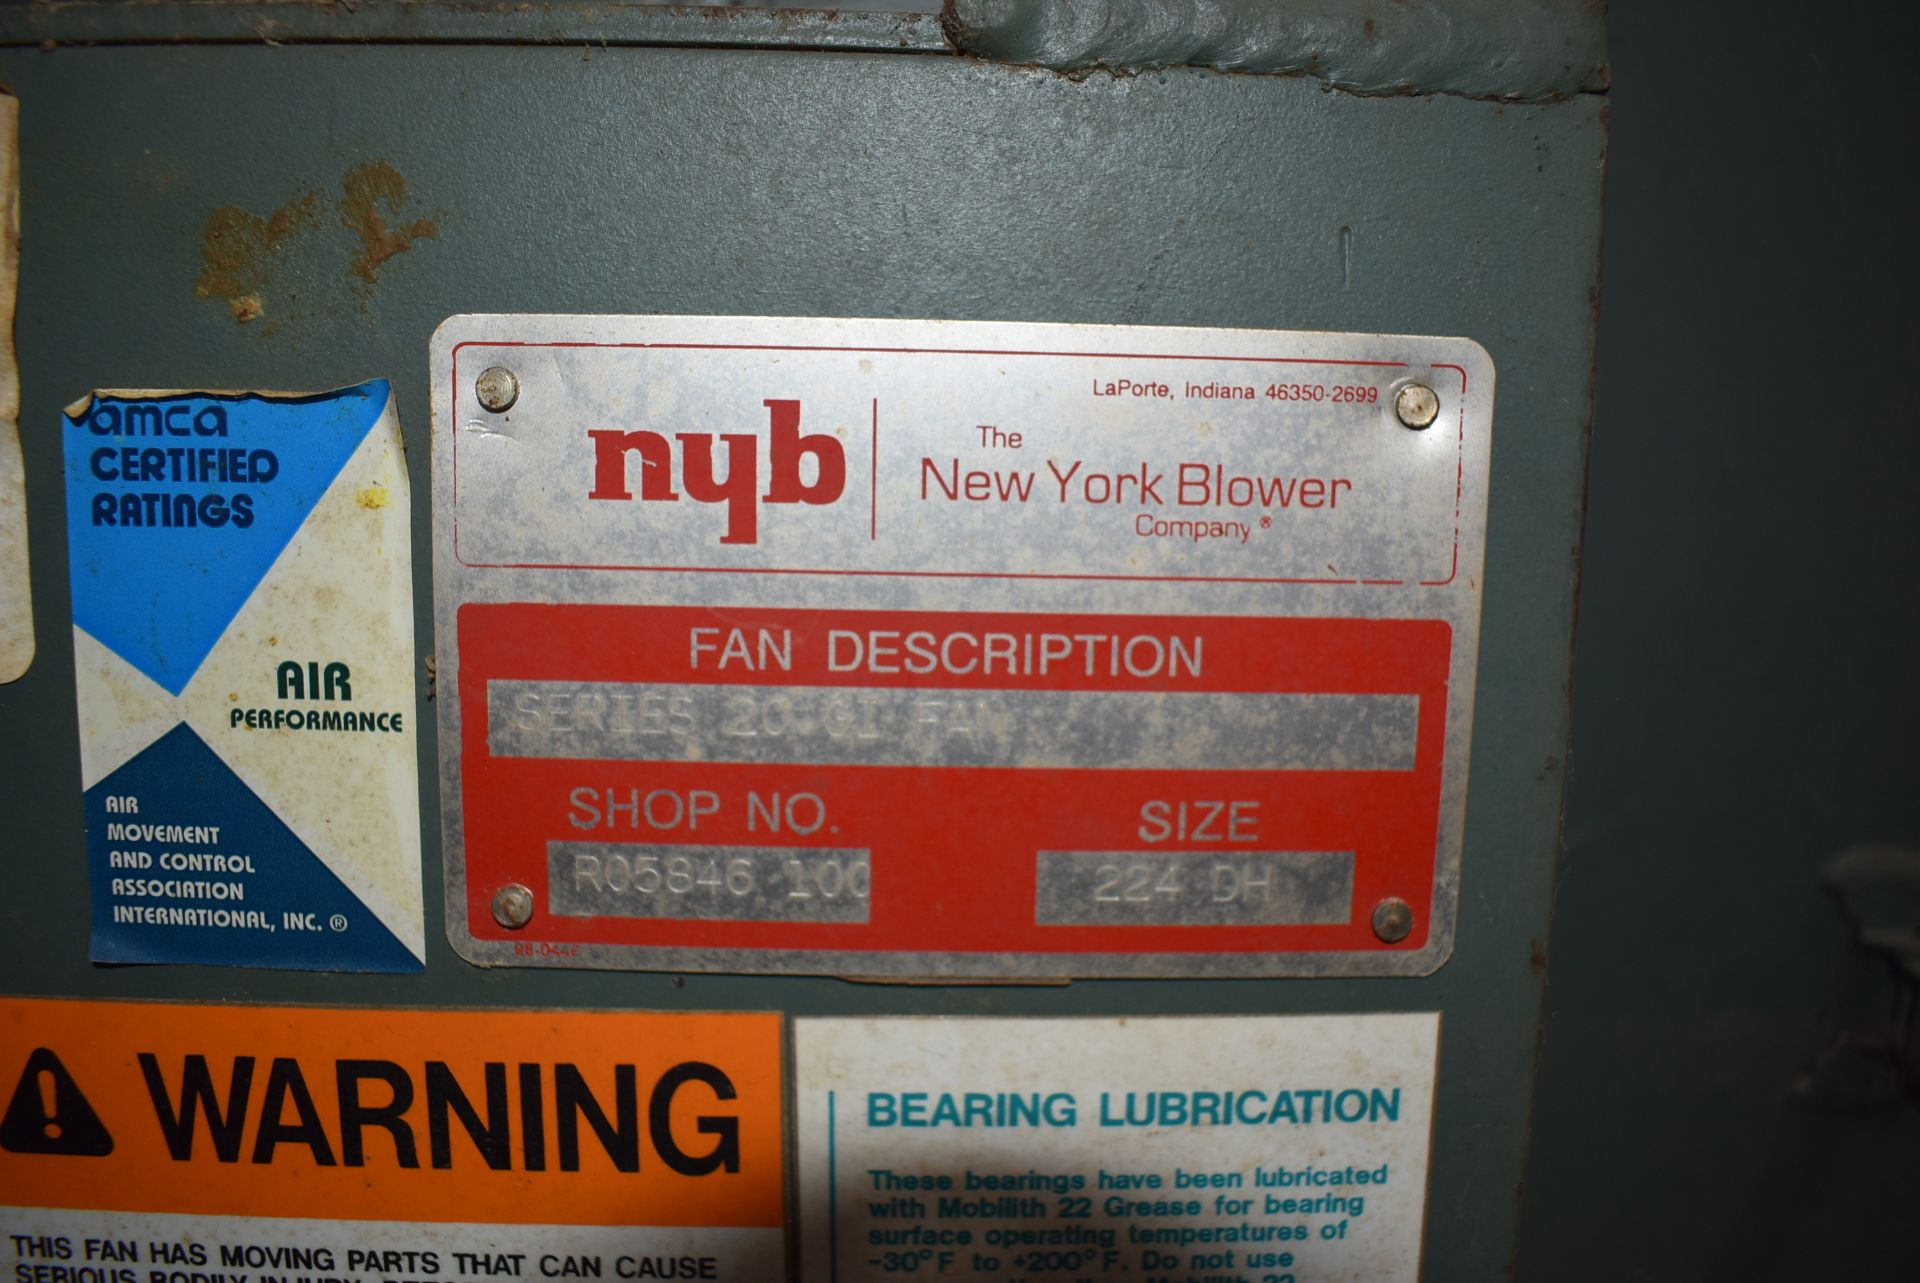 New York Blower, Series 20GI Fan, Size 224-DH, Does Not Include Motor - Image 2 of 4